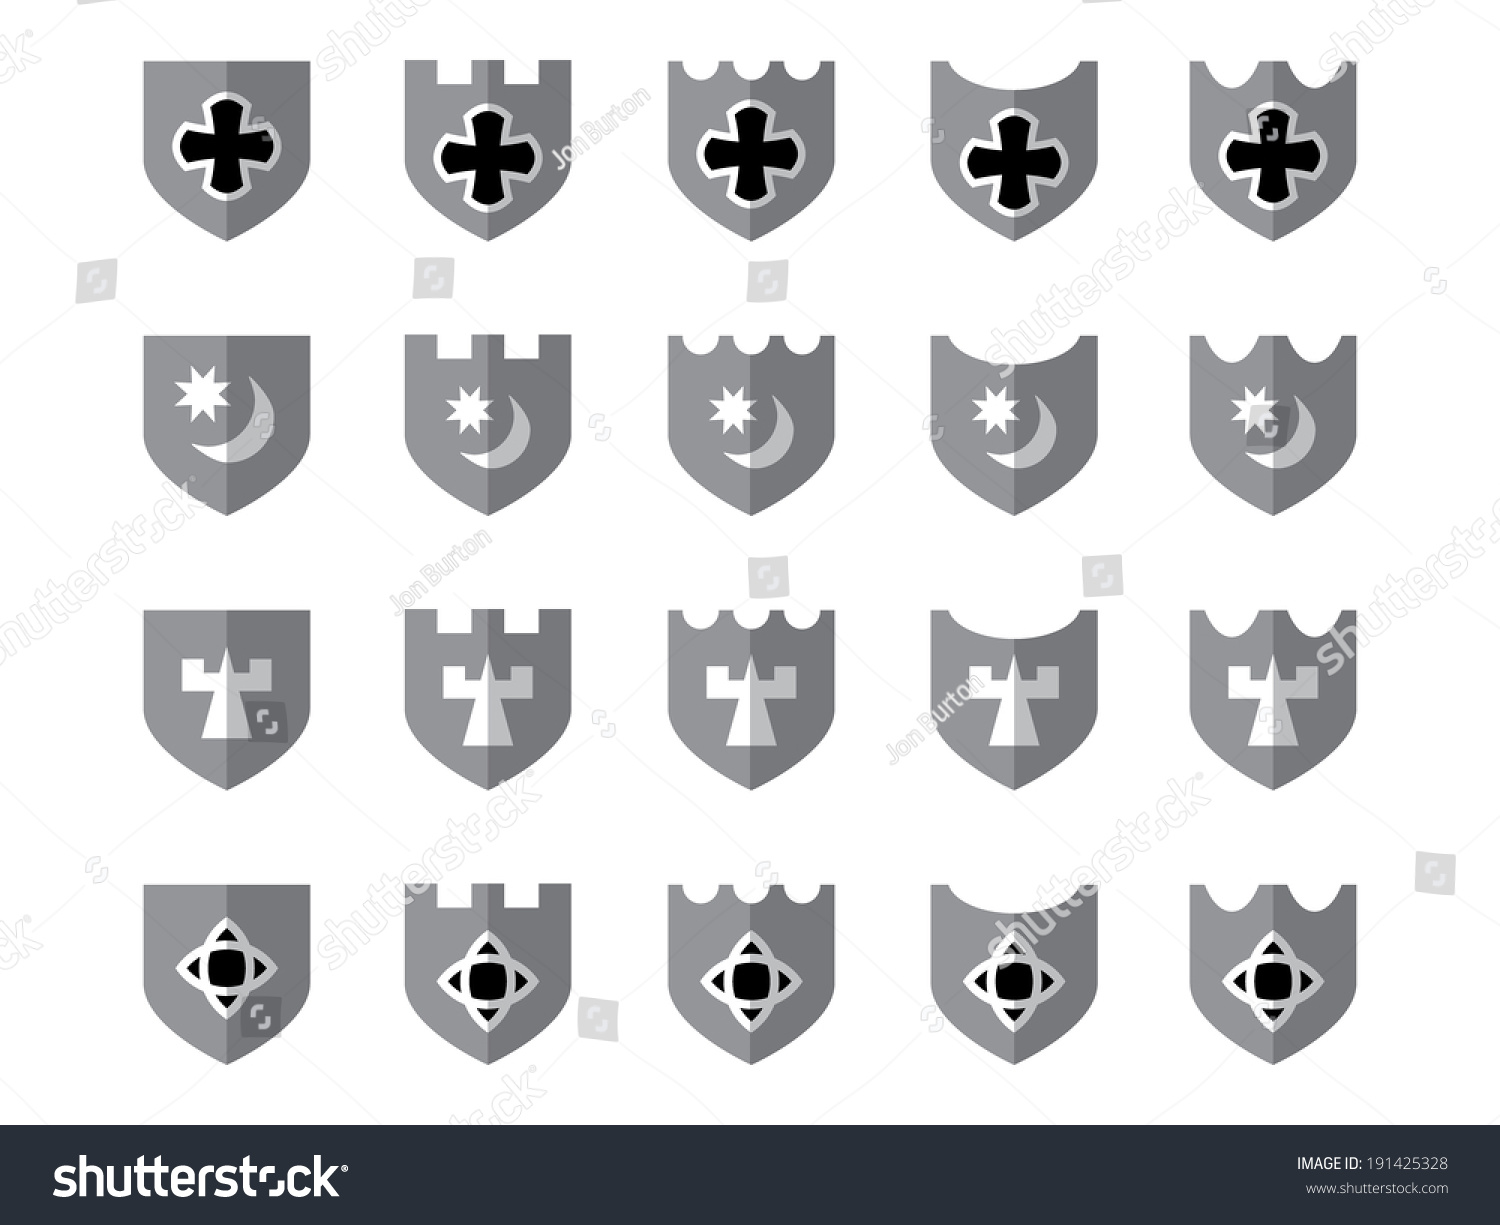 20 Shiny Medieval Shields Grayscale Black Stock Vector Royalty Free